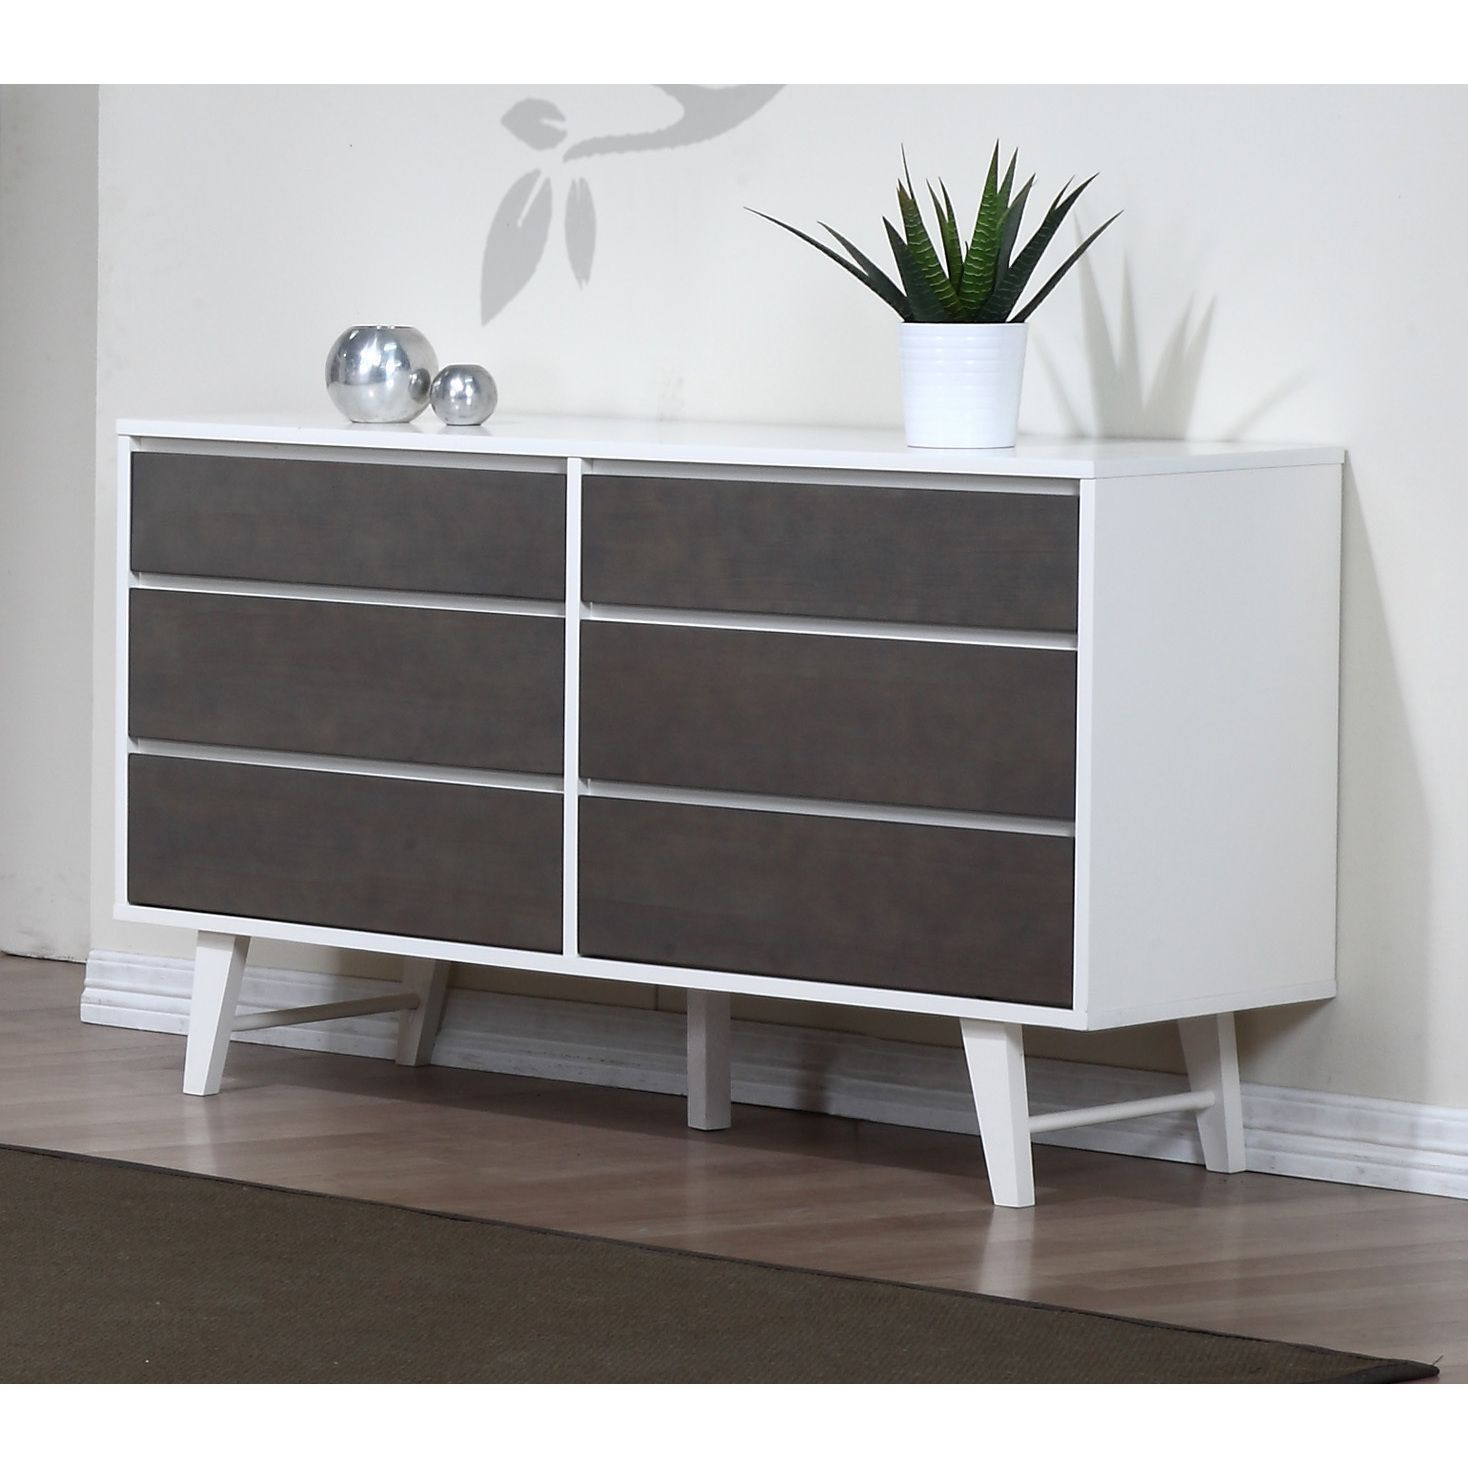 Bedroom Furniture Queens Ny Easy Bedroom Design Ideas Bedroom Sets Houston Baby Bedroom Wall Art: This Dresser Features Six Convenient Sliding Drawers That